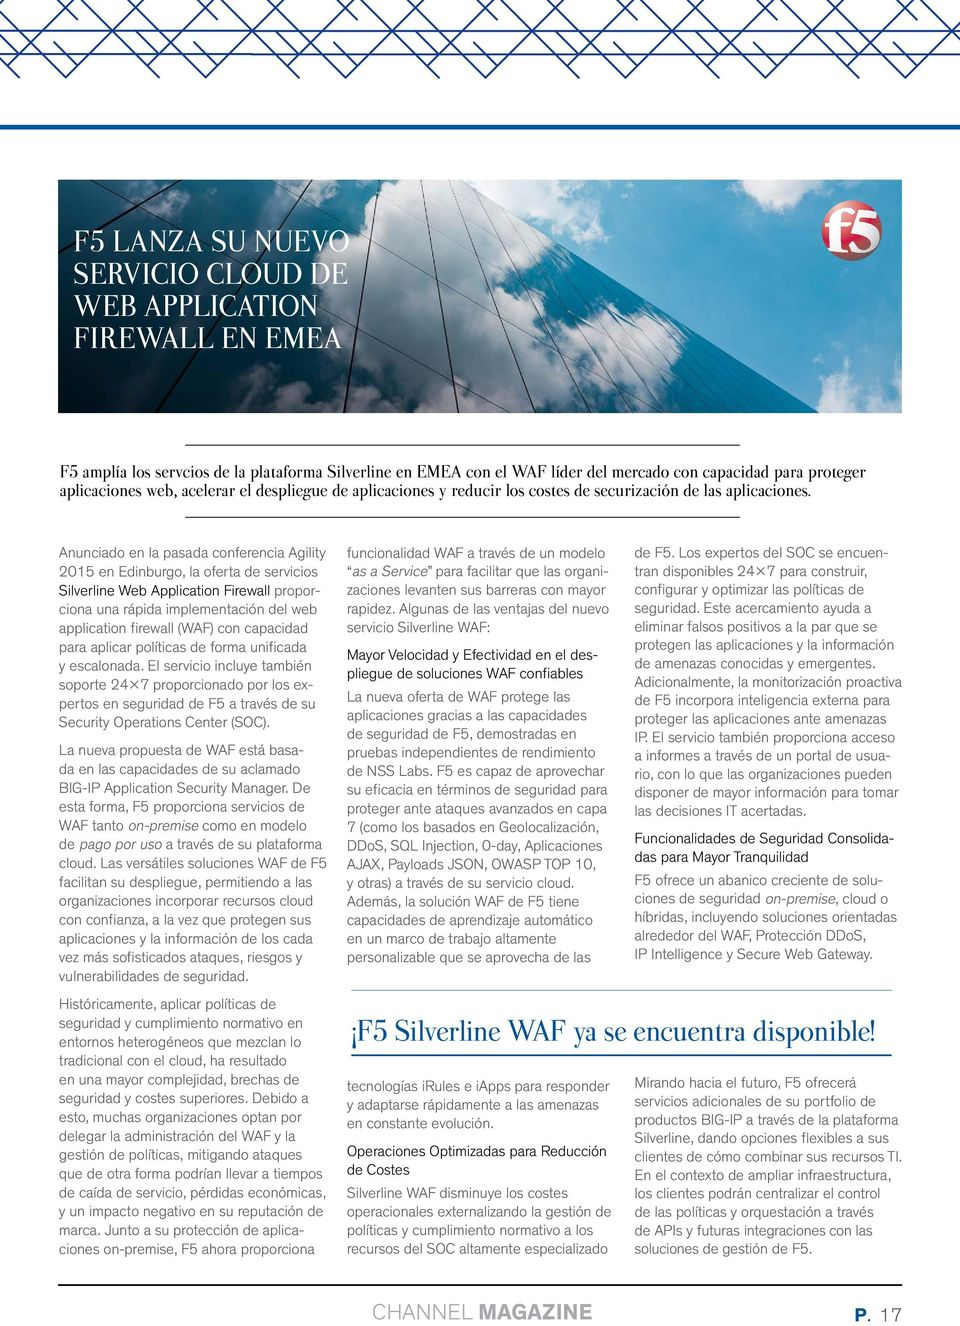 Anunciado en la pasada conferencia Agility 2015 en Edinburgo, la oferta de servicios Silverline Web Application Firewall proporciona una rápida implementación del web application firewall (WAF) con